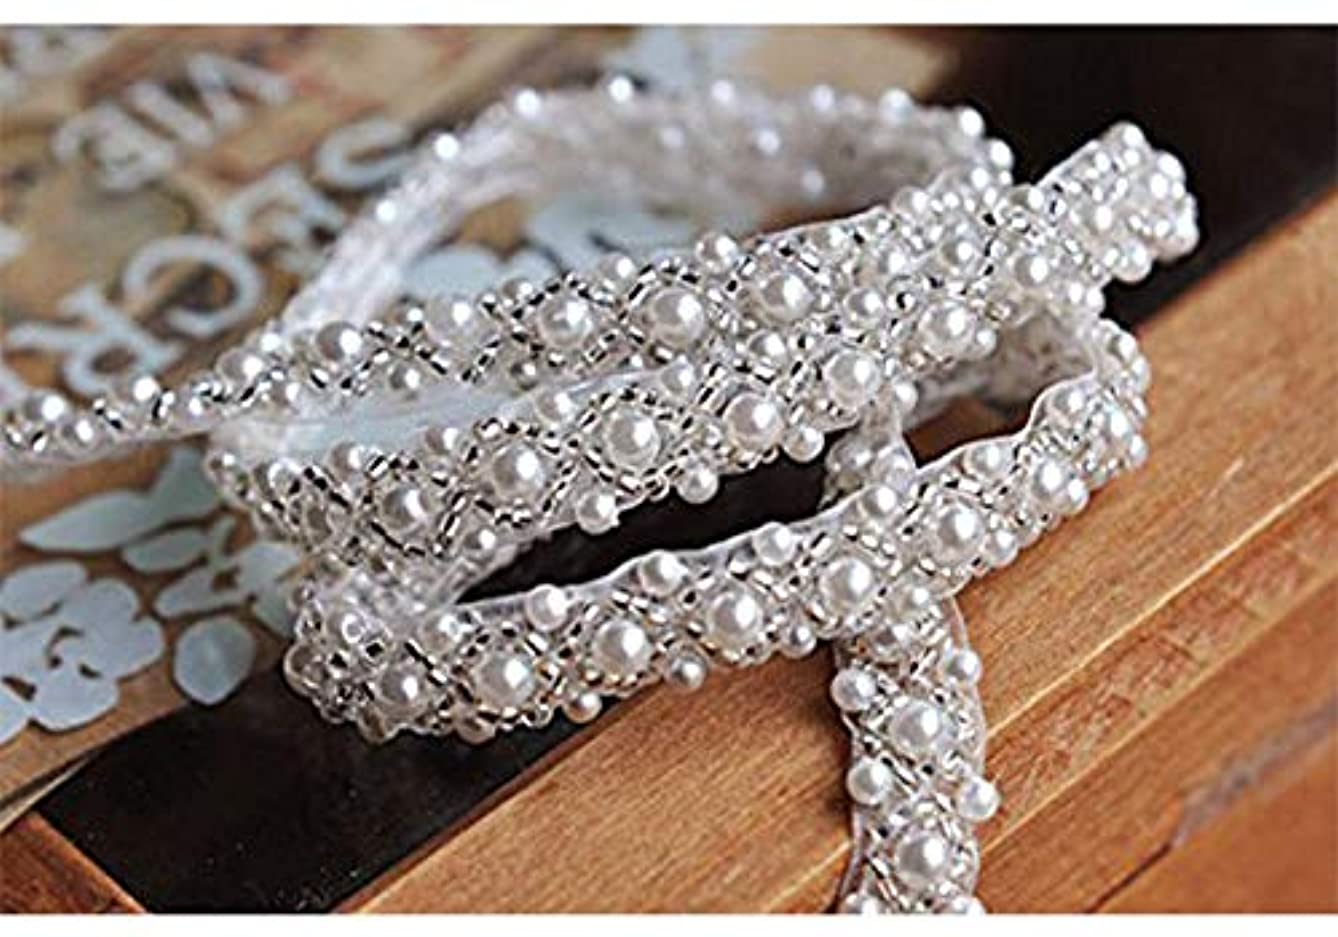 QueenDream Elegant Wedding Silver Rhinestone Applique with Pearls -2yard